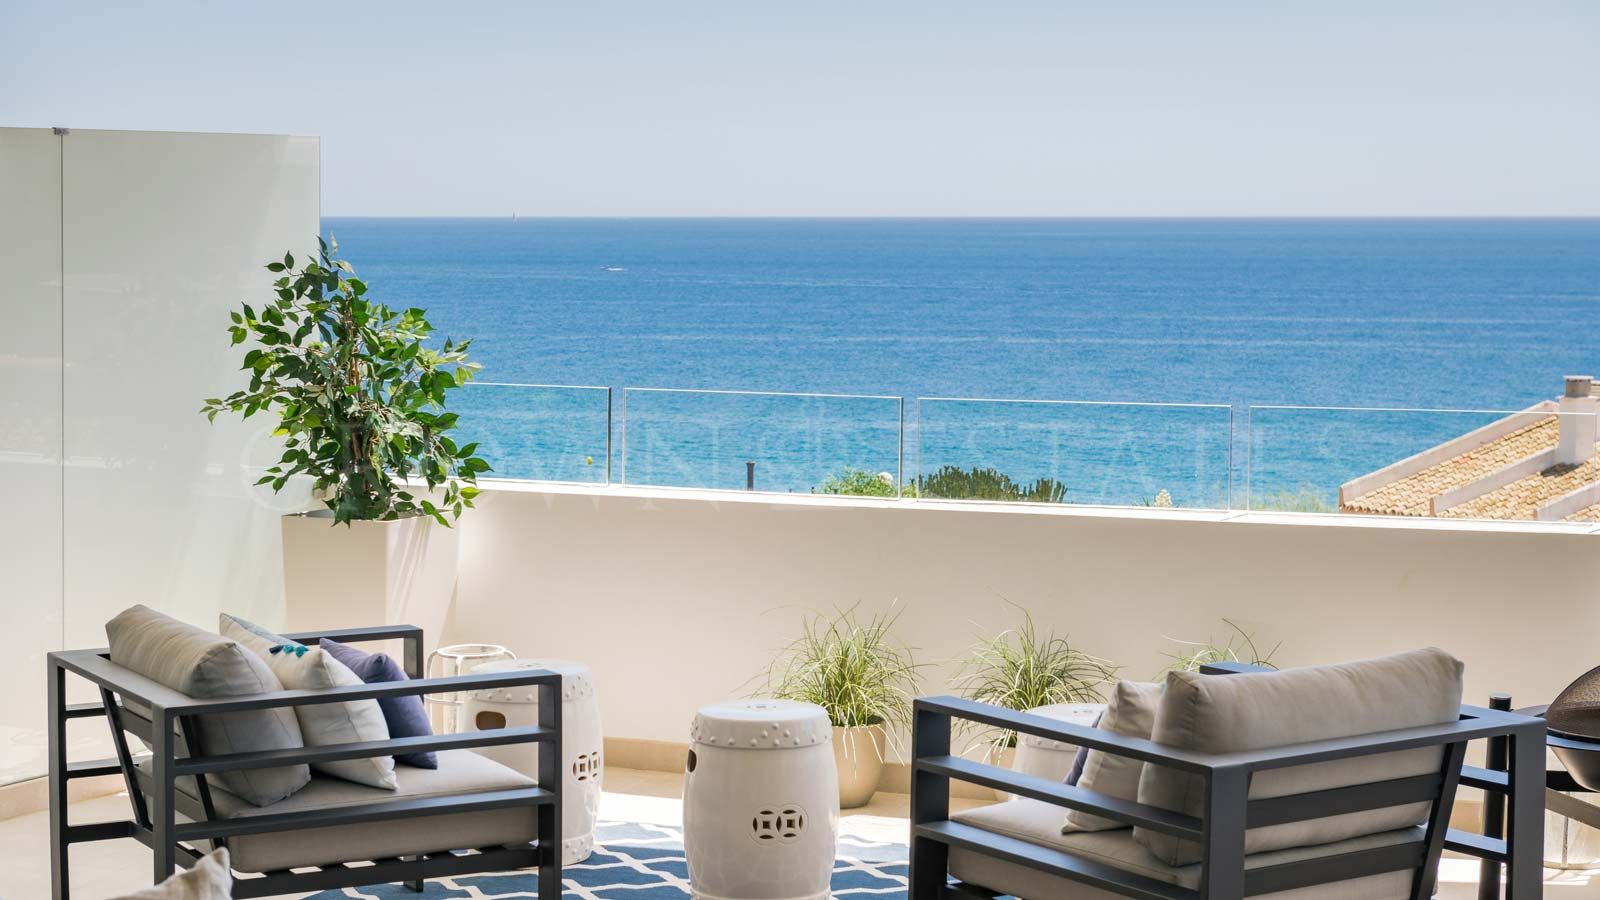 9440 square metres of prime Costa del Sol land transformed into an iconicresidential resort that brings new standards of quality to its Mijas Costalocation.